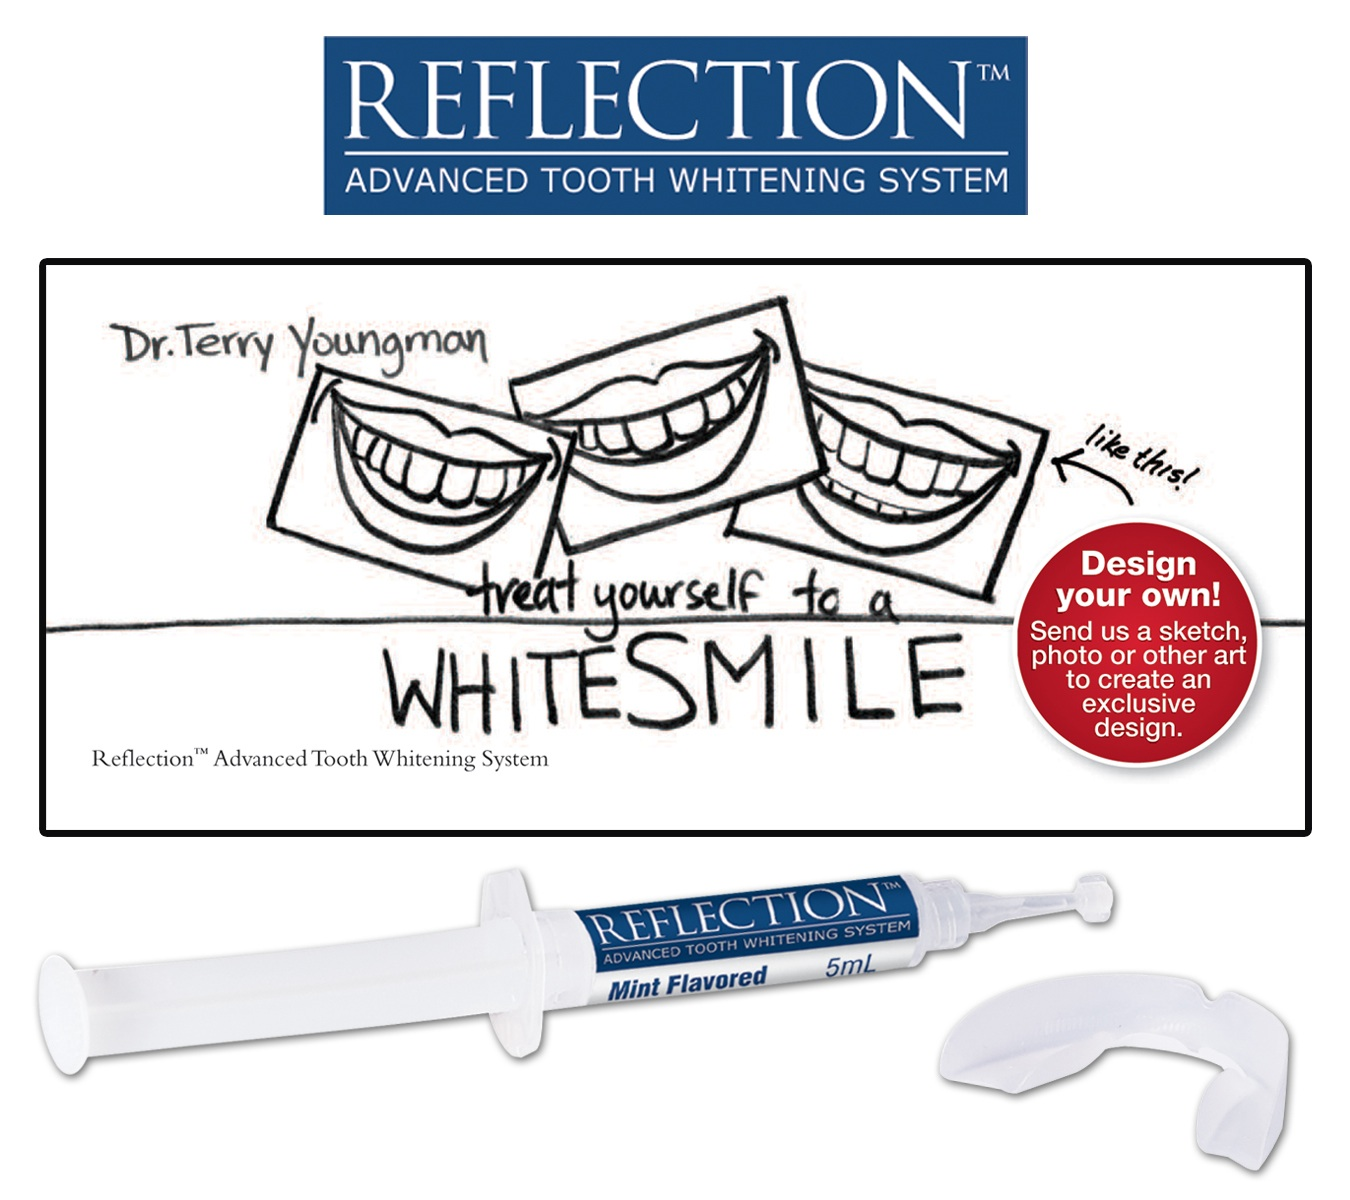 Custom Reflection Whitening Kits